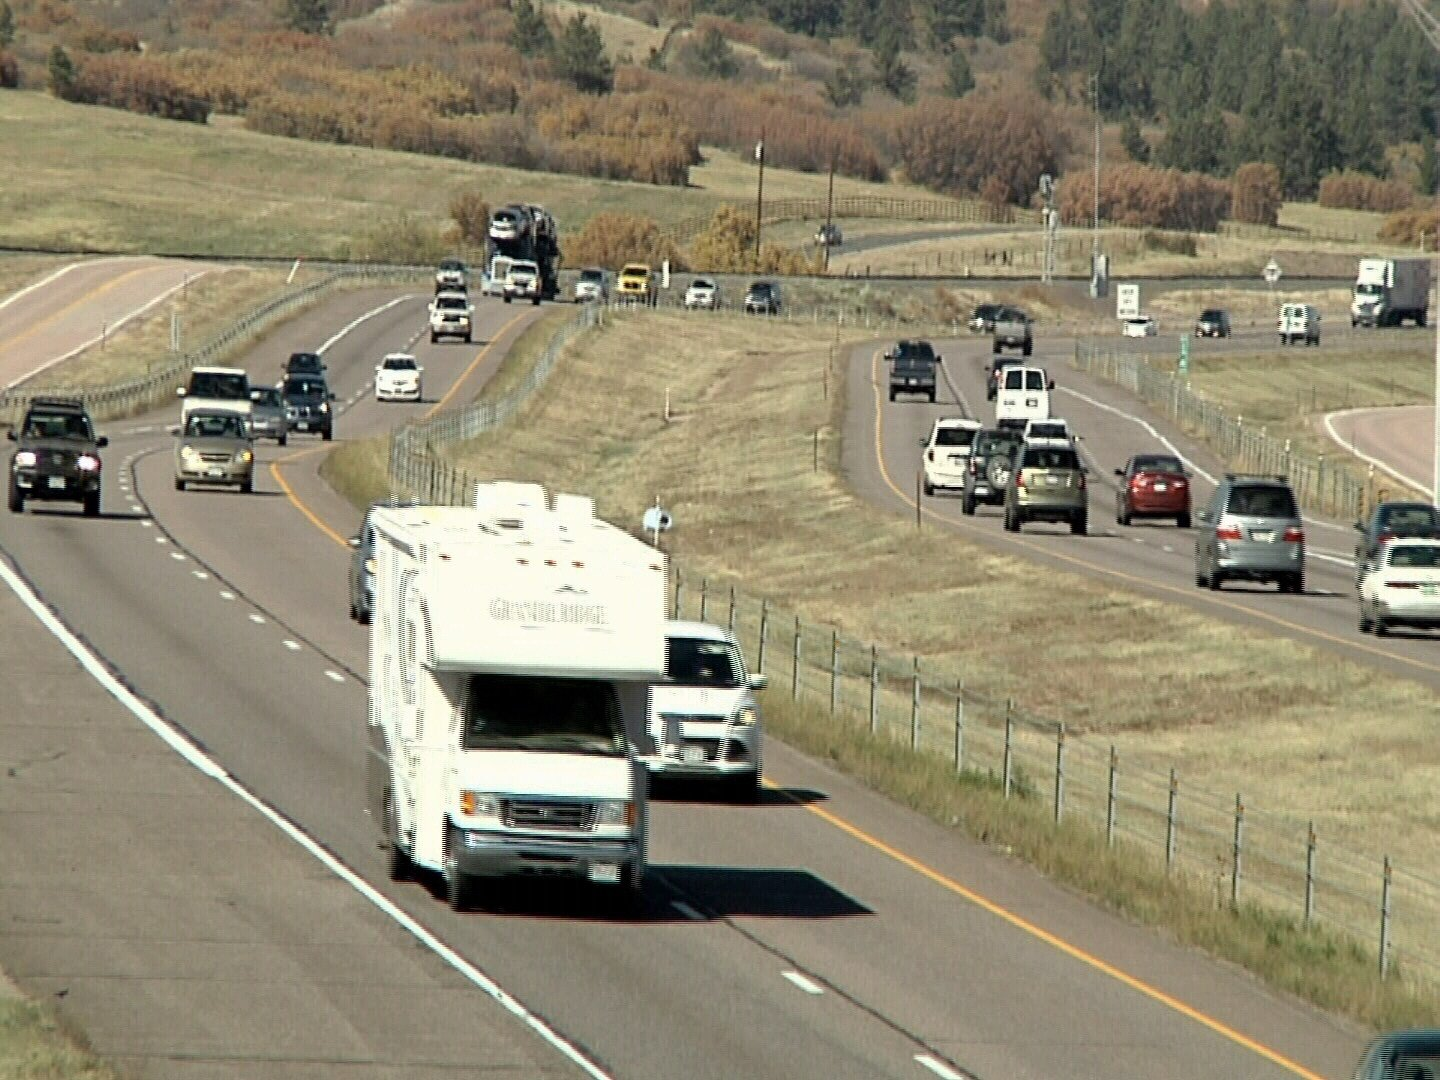 """Interstate 25 narrows to 4 lanes between Monument and Castle Rock for a 17 mile """"gap"""" that is often congested and a frequent site for serious crashes."""